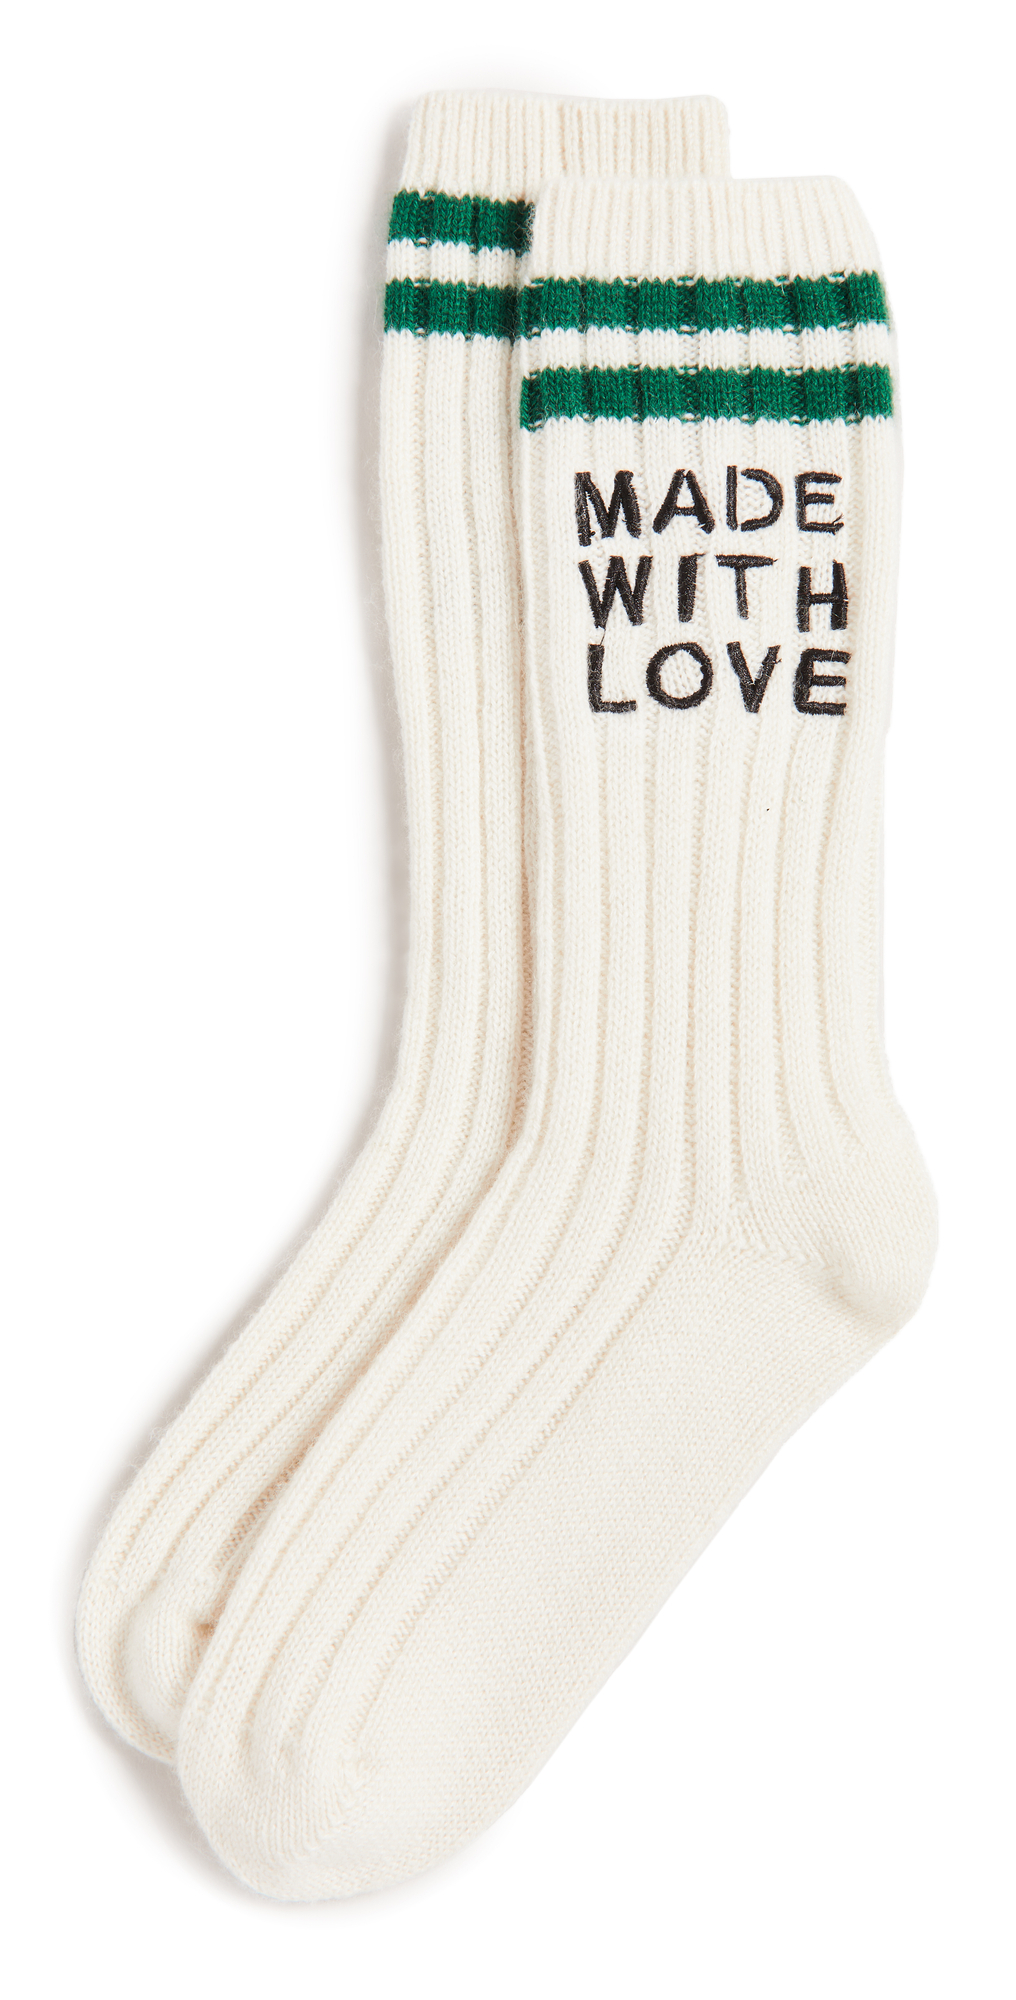 Cashmere Made with Love Good Morning Socks